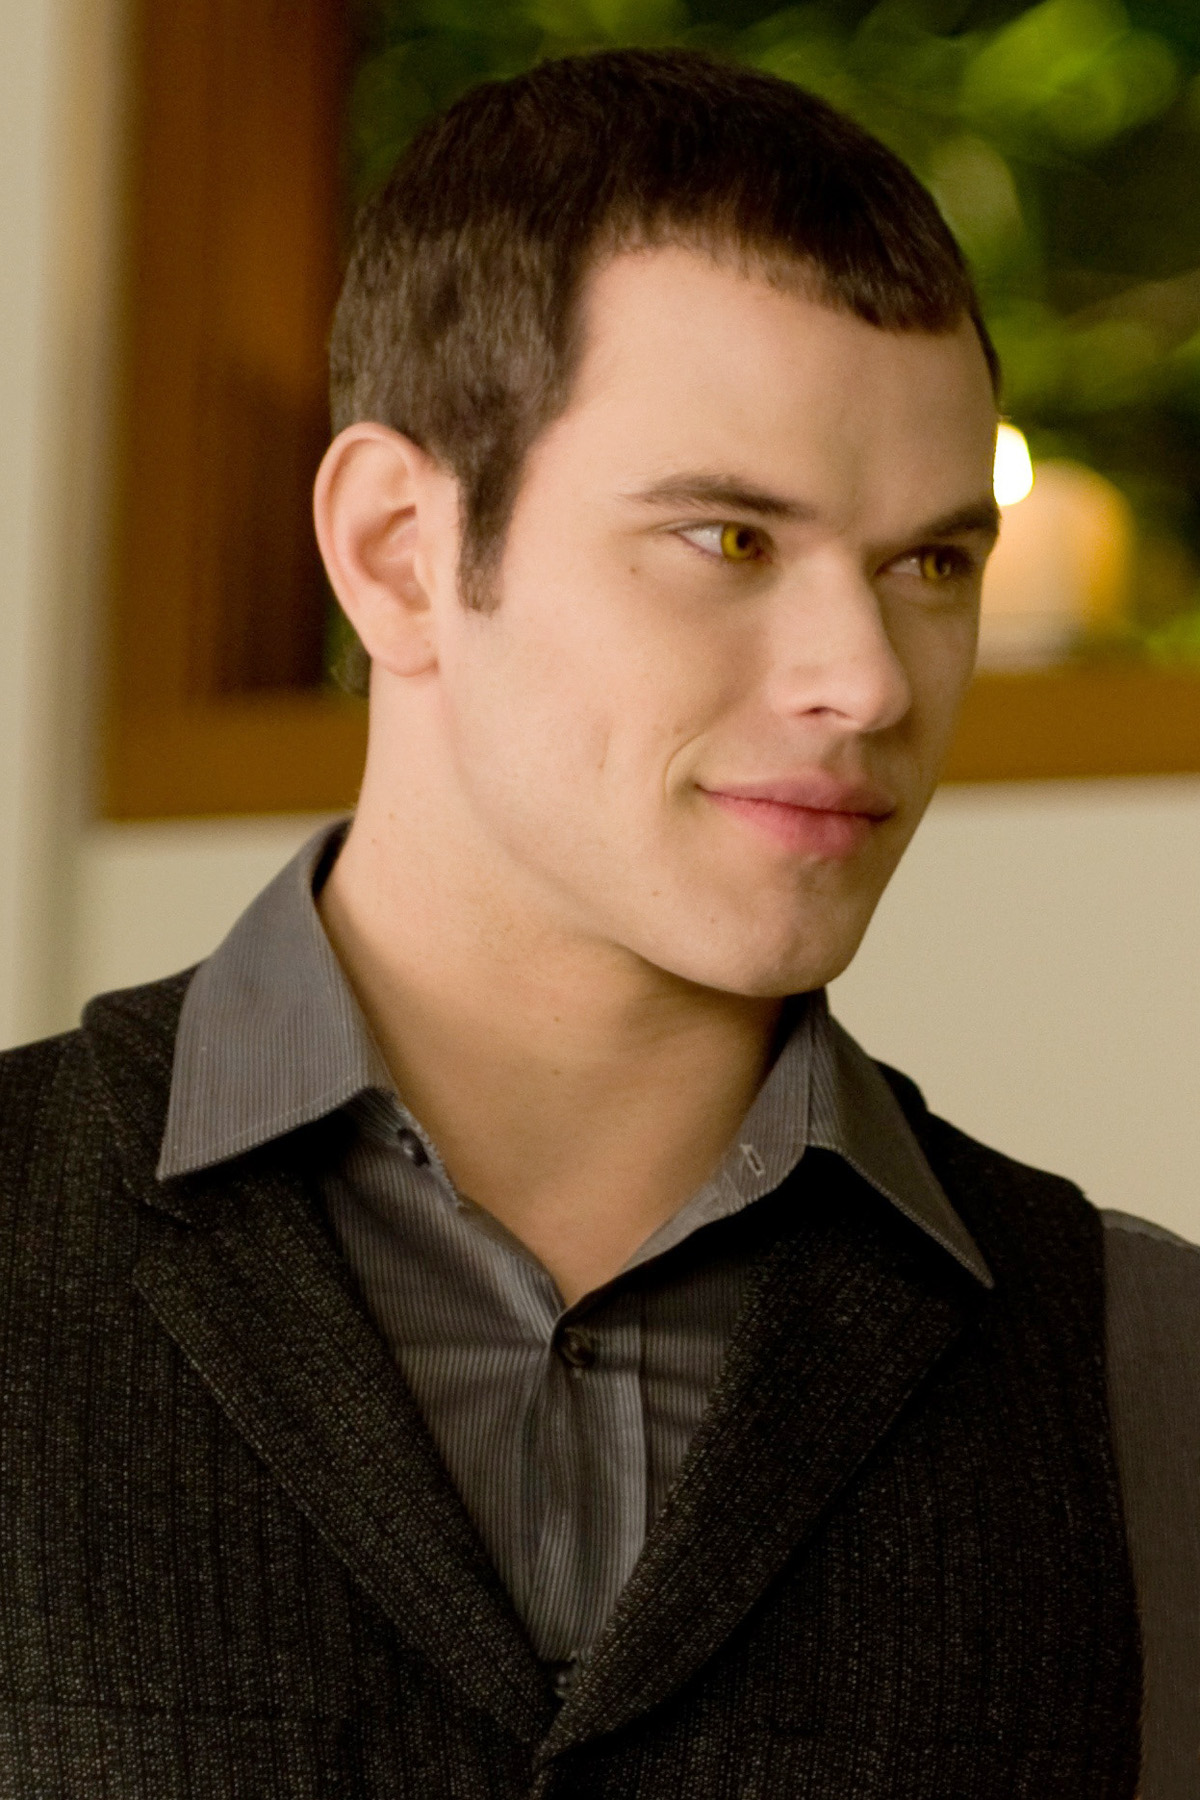 http://images2.wikia.nocookie.net/__cb20110112003810/twilightsaga/images/e/ee/Emmett_Cullen_New_Moon_Bella's_Party.jpg